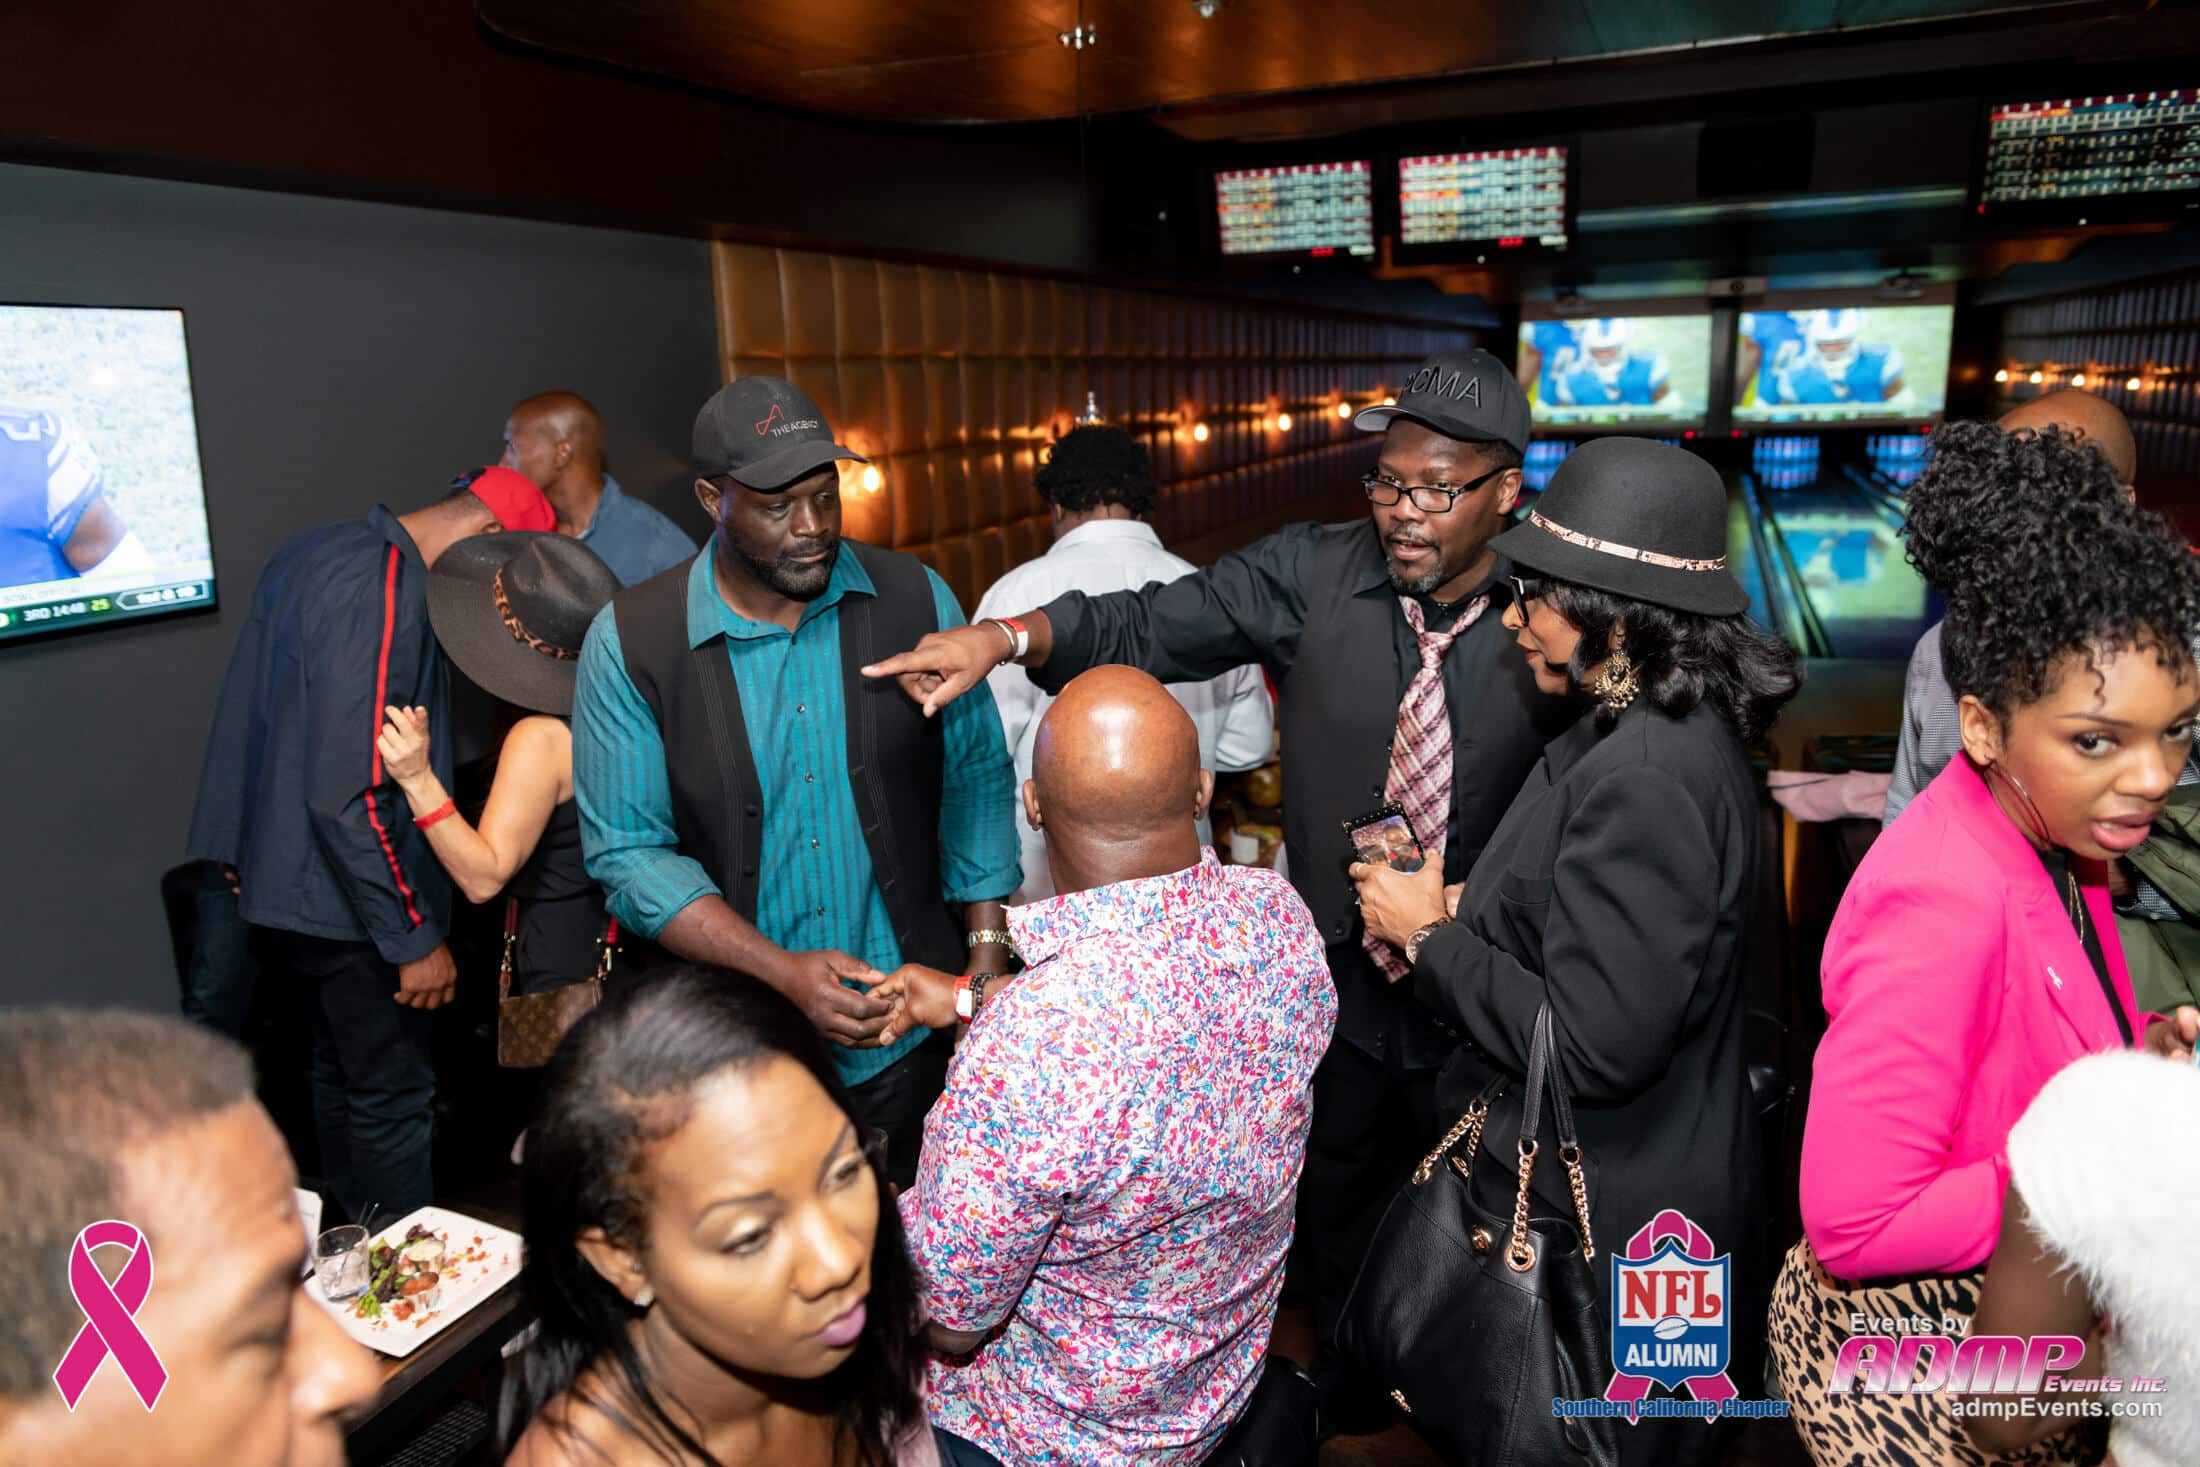 NFL Alumni SoCal Charity Event Series Breast Cancer Event 10-14-19-177